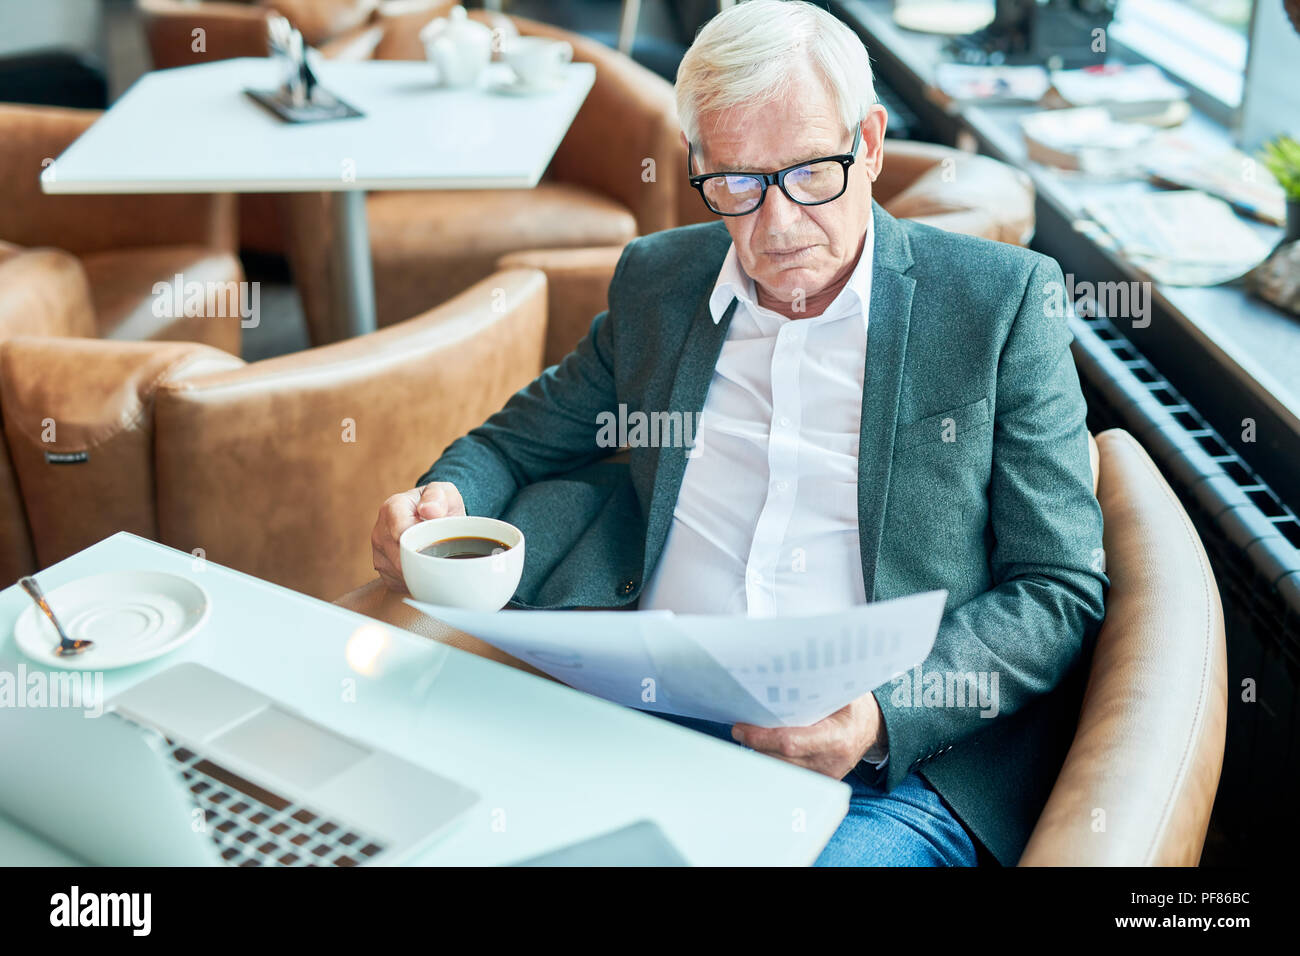 Senior Businessman Working in Cafe - Stock Image